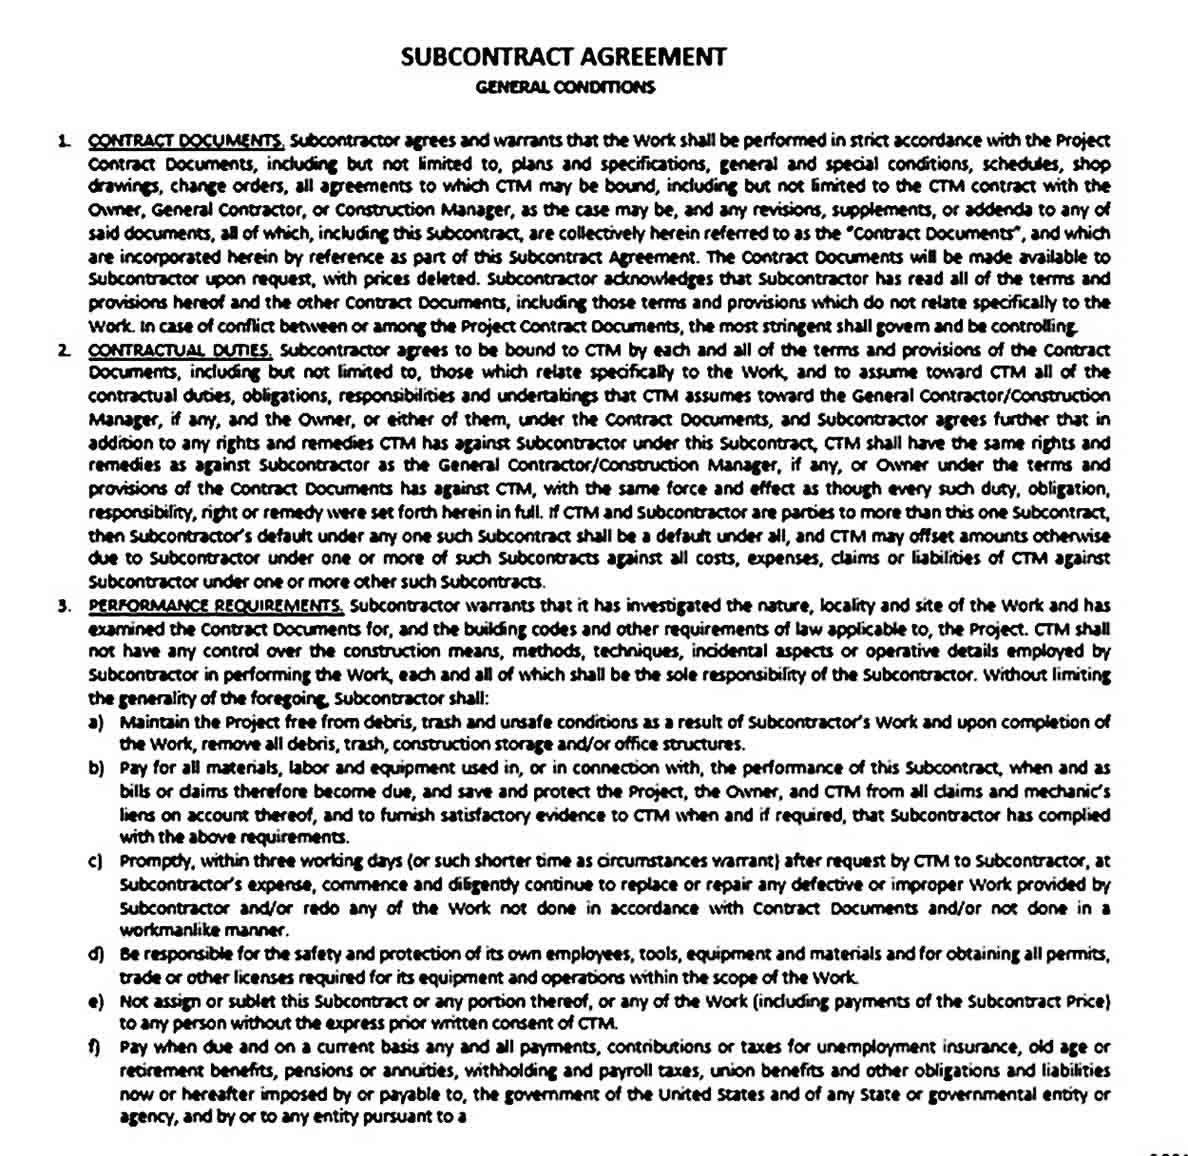 Standard Subcontract Agreement